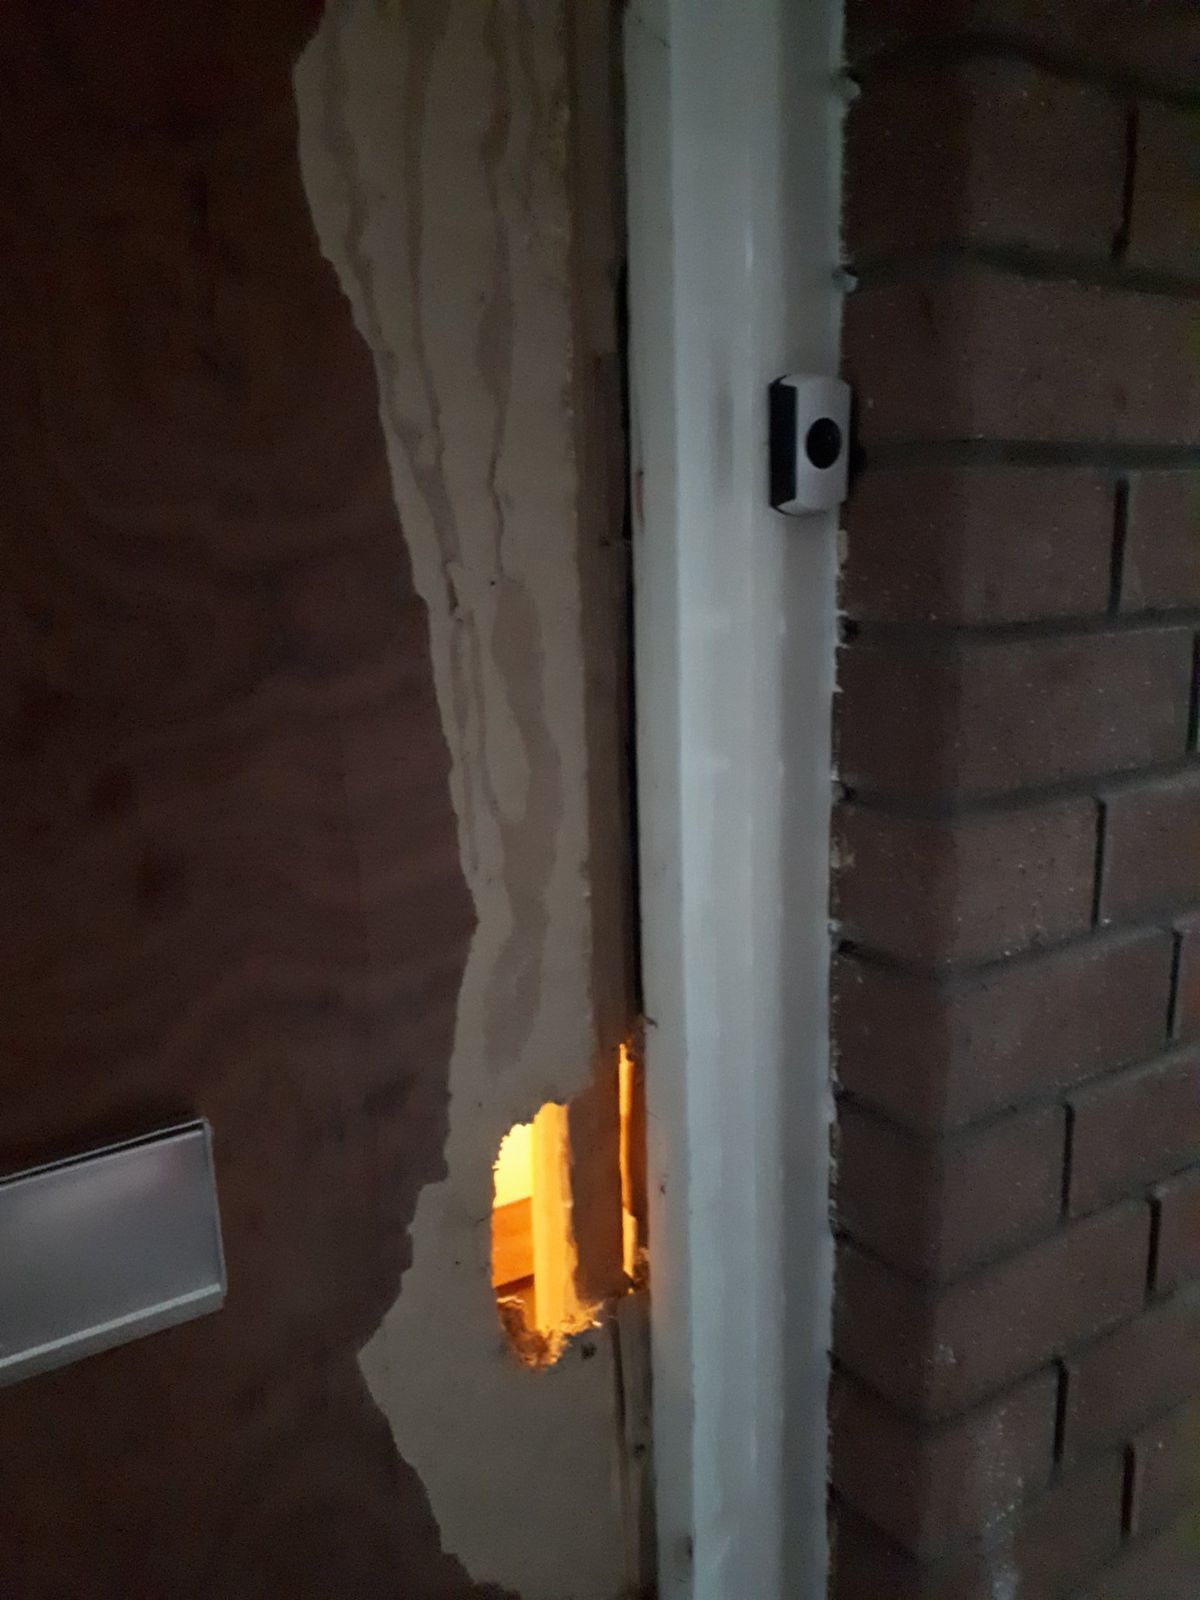 A door broken during one of the searches